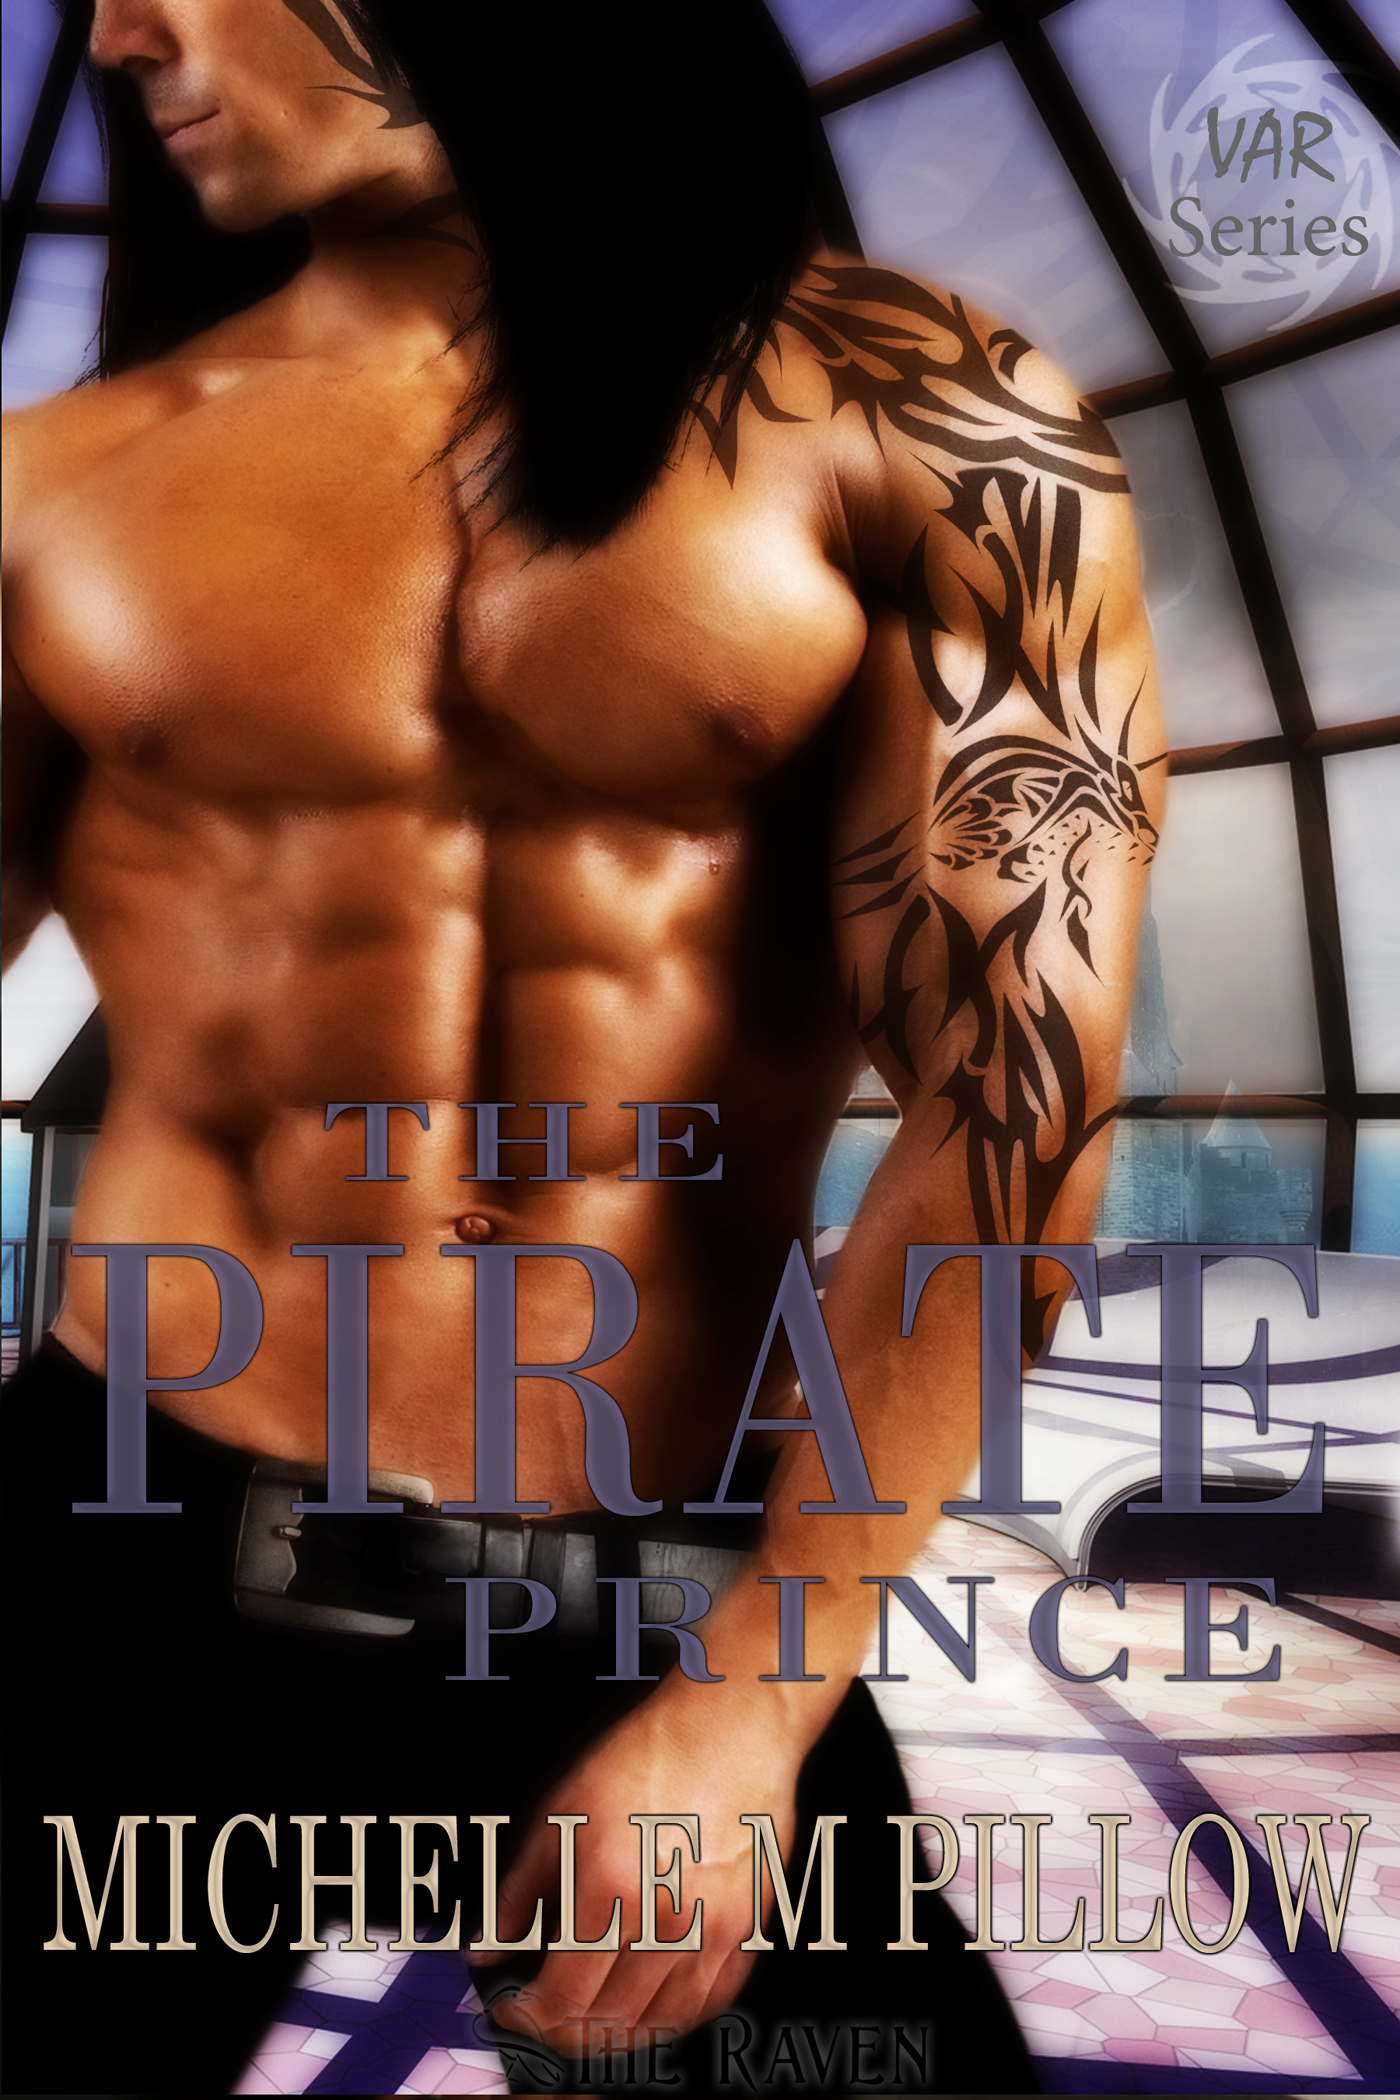 Michelle M. Pillow - The Pirate Prince (Lords of the Var 5)